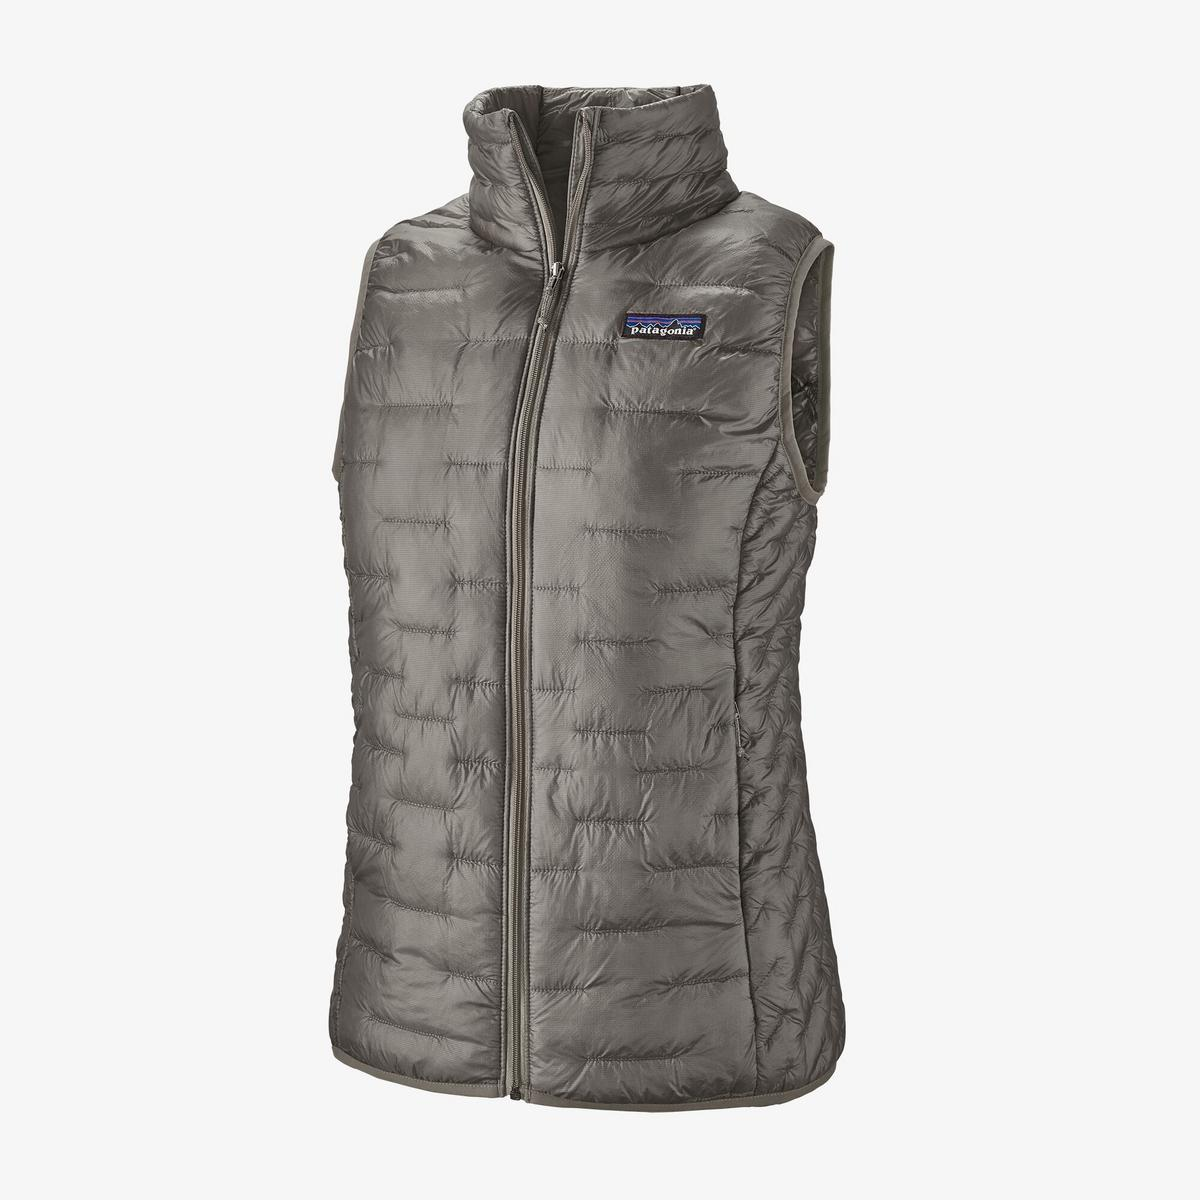 Patagonia Women's Micro Puff Vest - Feather Grey